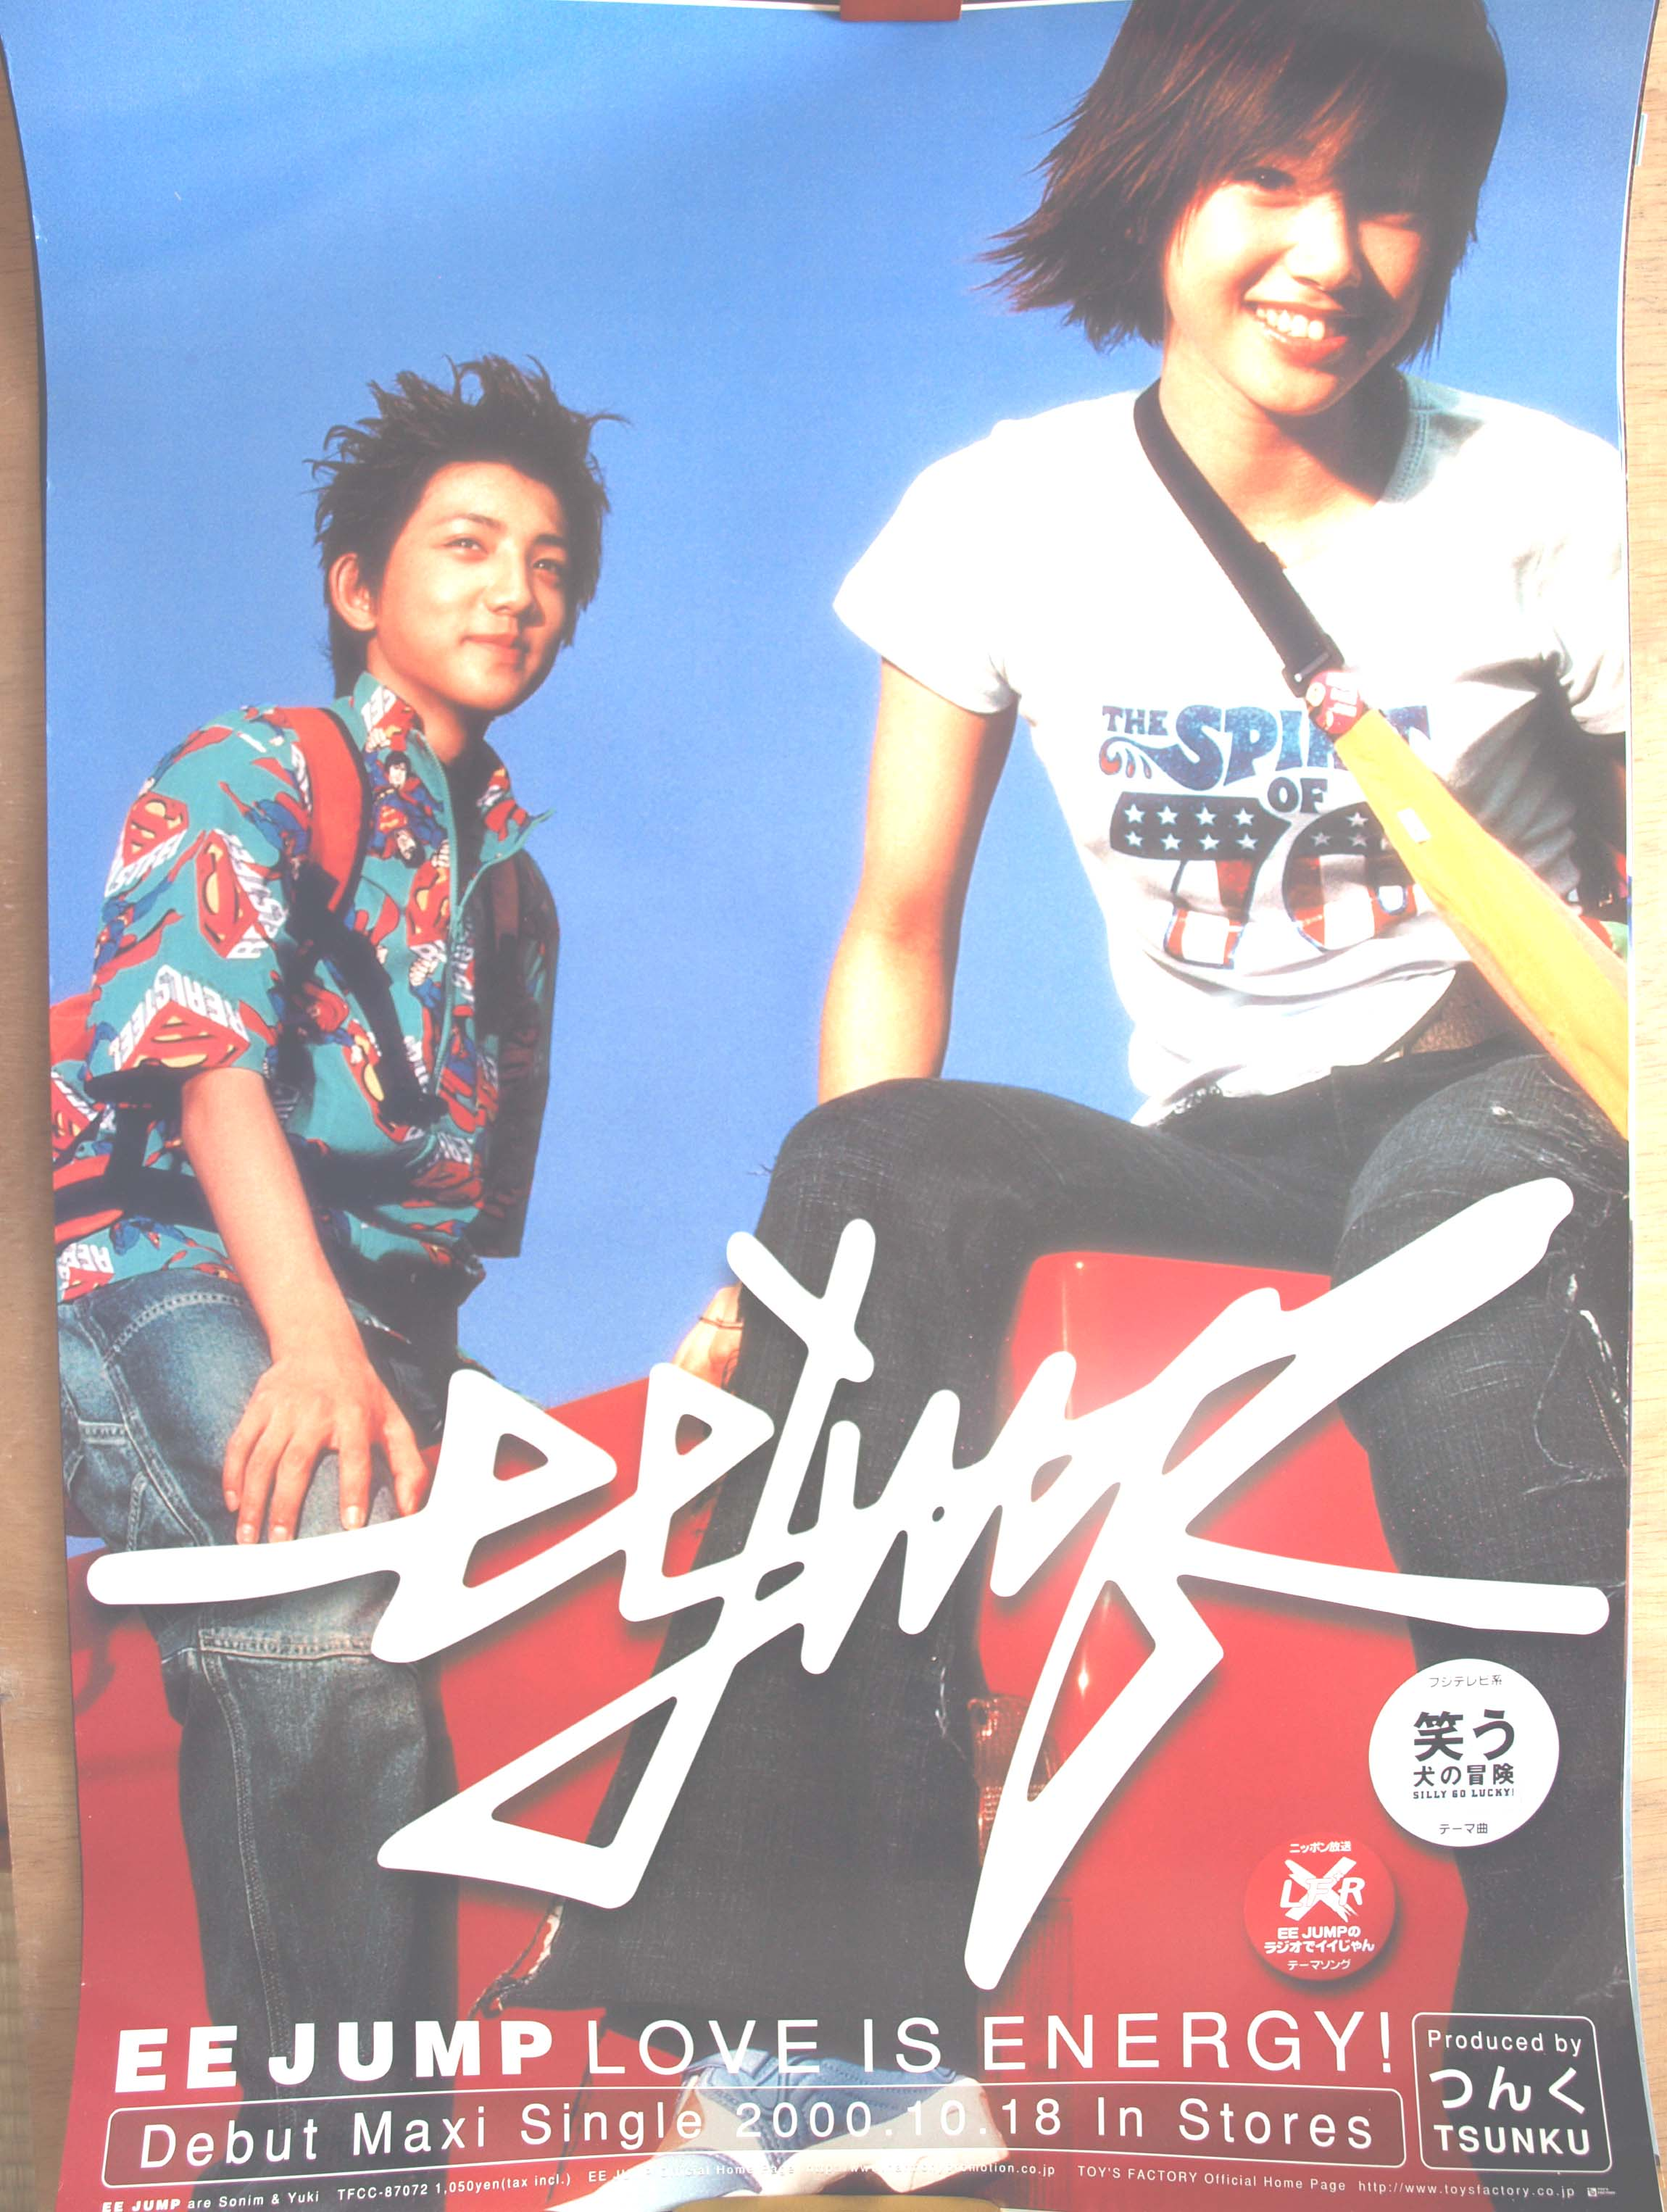 EE JUMP 「LOVE IS ENERGY!」のポスター